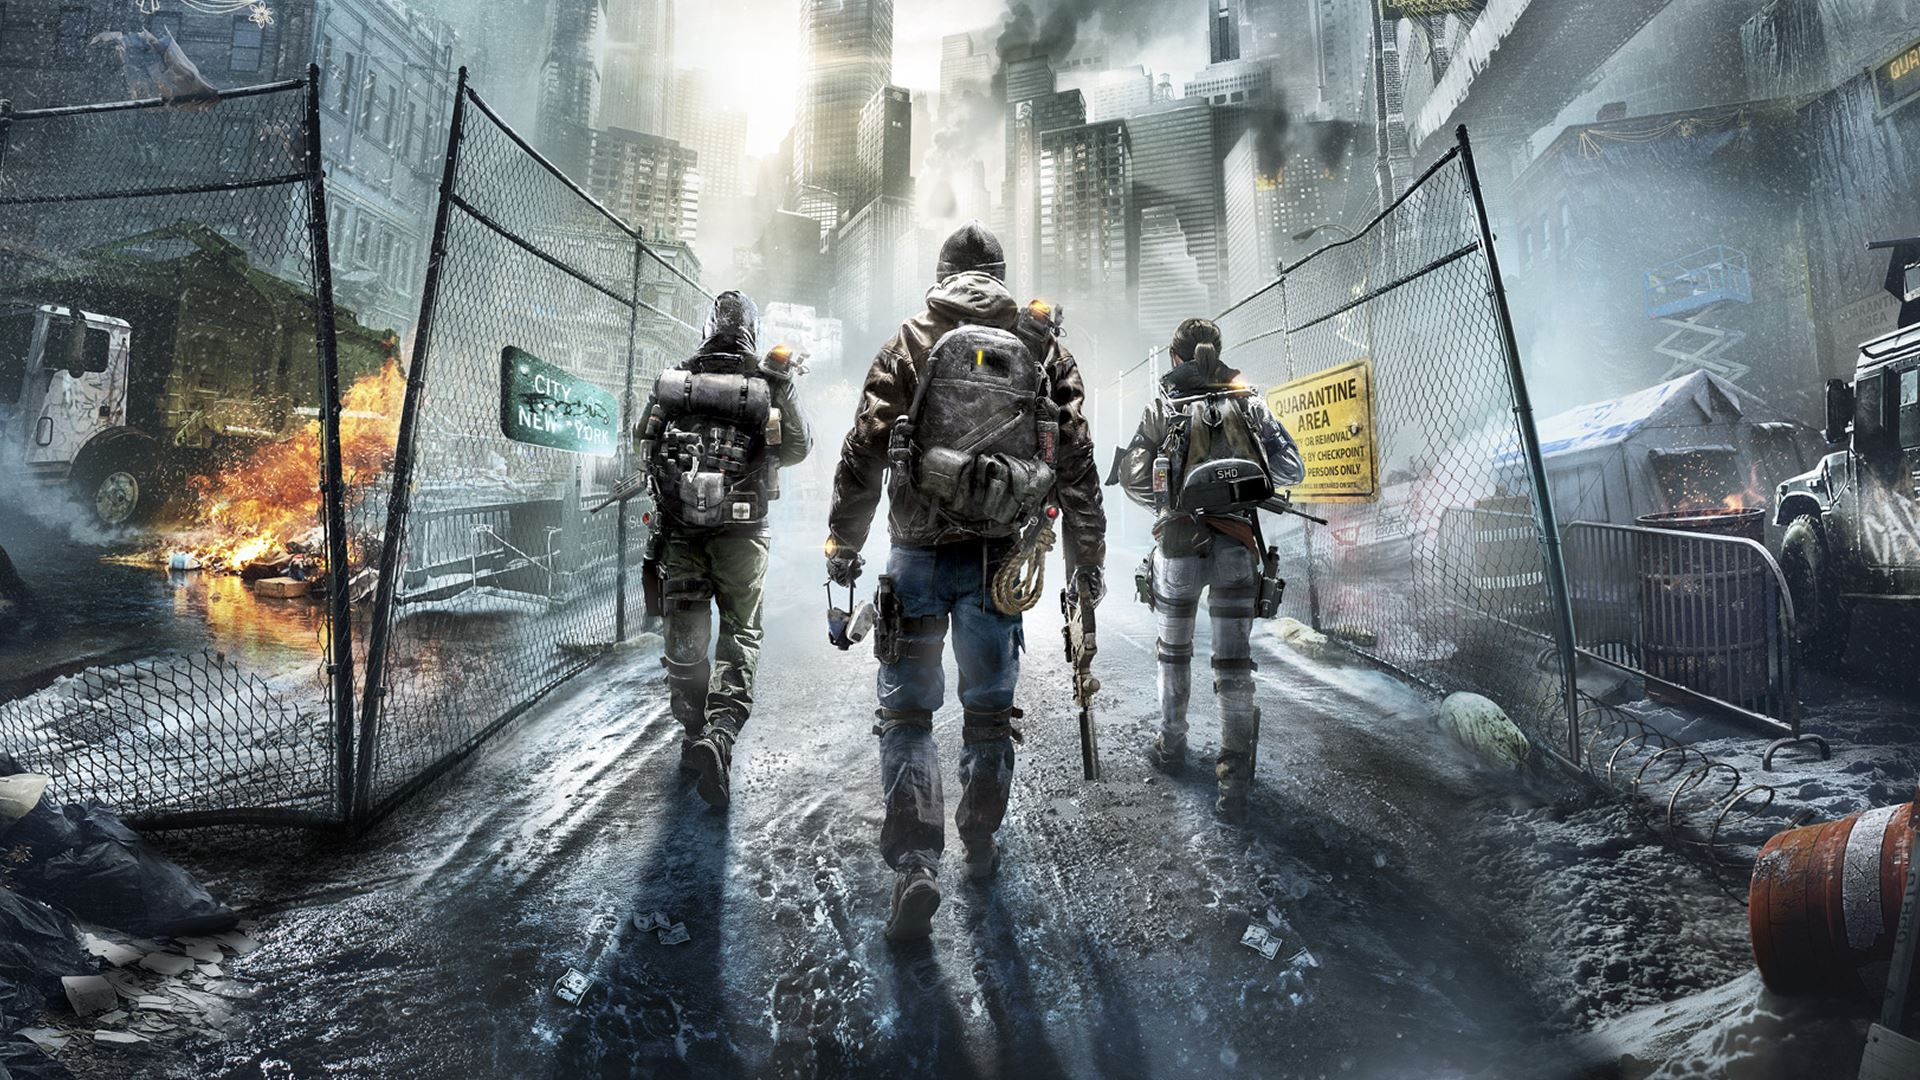 The Division 'Resistance' Update 1.8 Launches Tomorrow, Free Weekend Announced